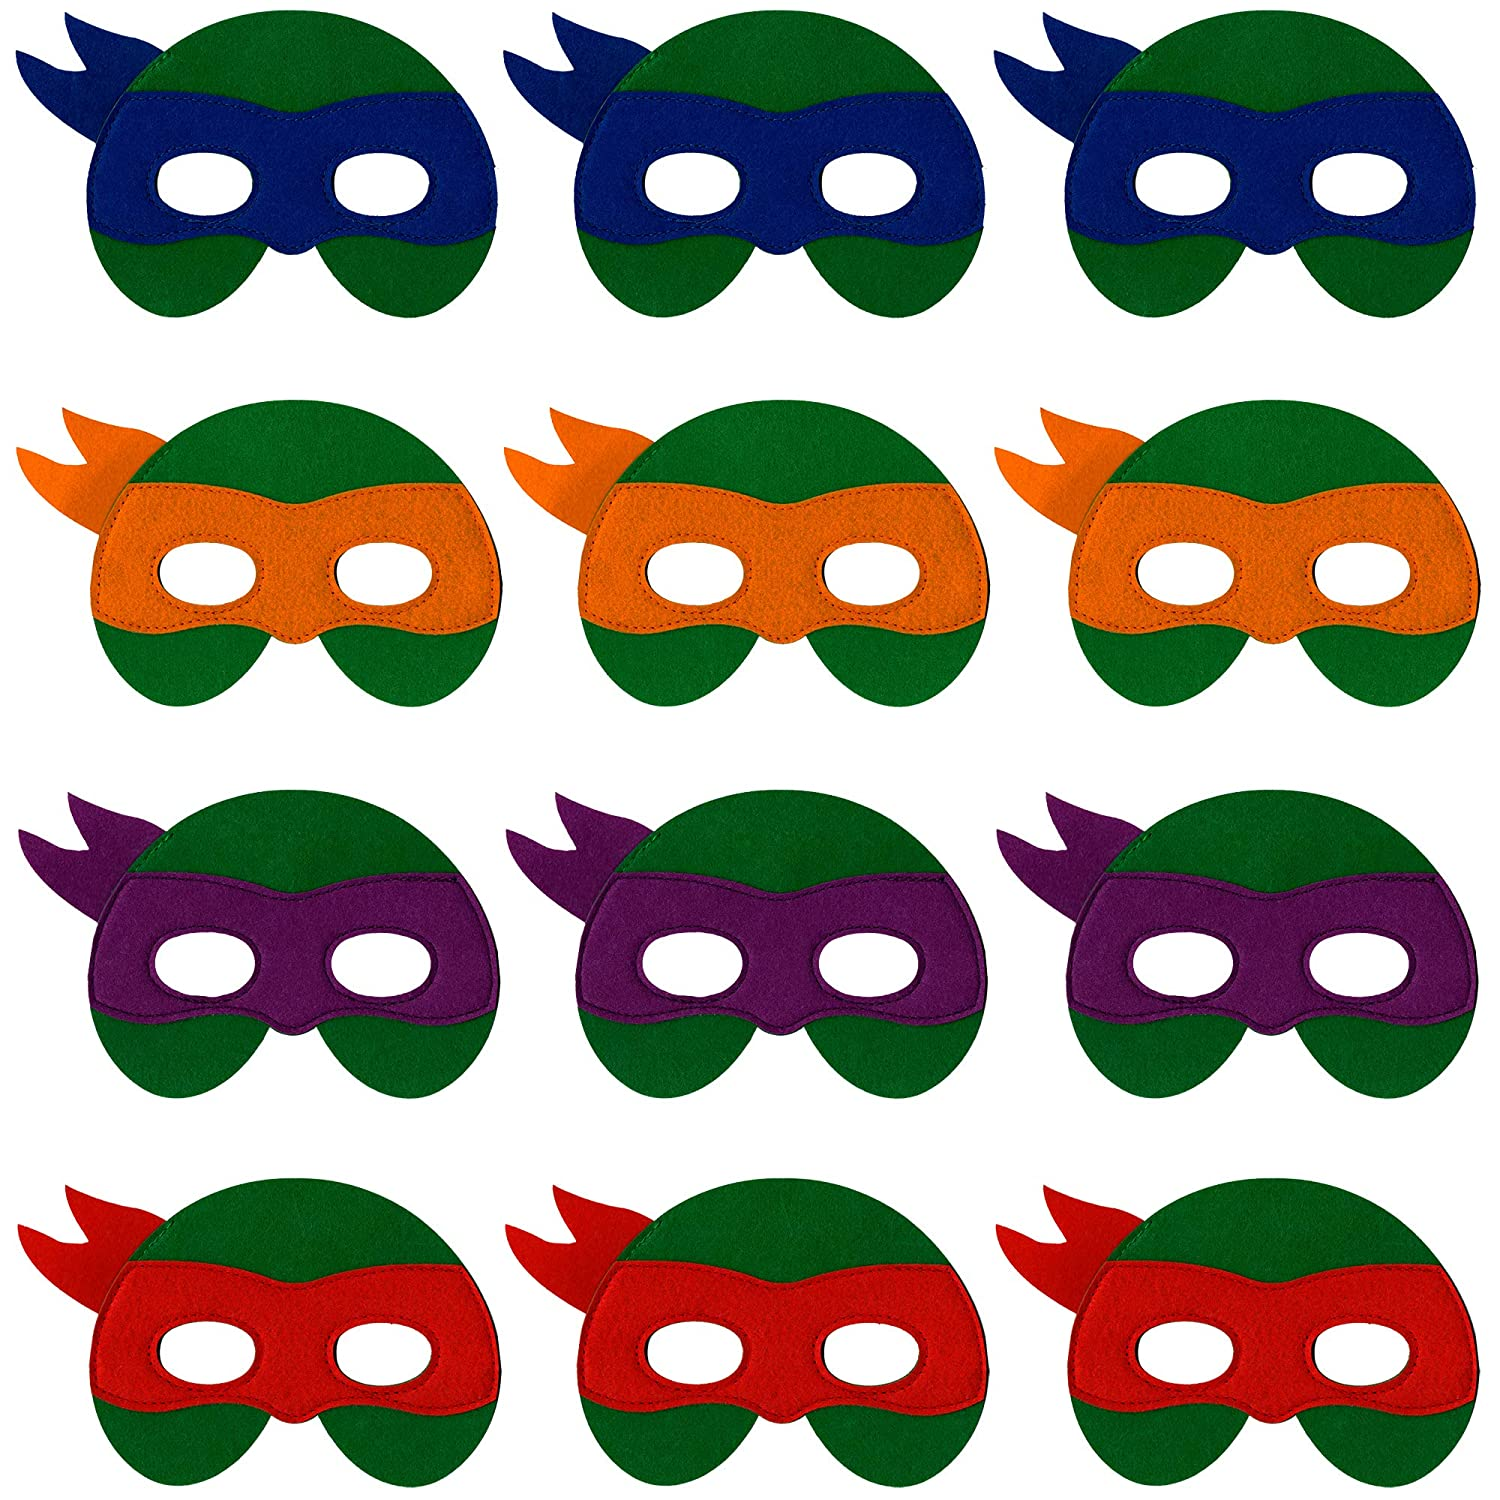 Ninja Turtle Masks for Kids 12 Felt Toy Masks Best Birthday Party Ninja Turtles Supplies Favors for Goodie Bag Gifts etc